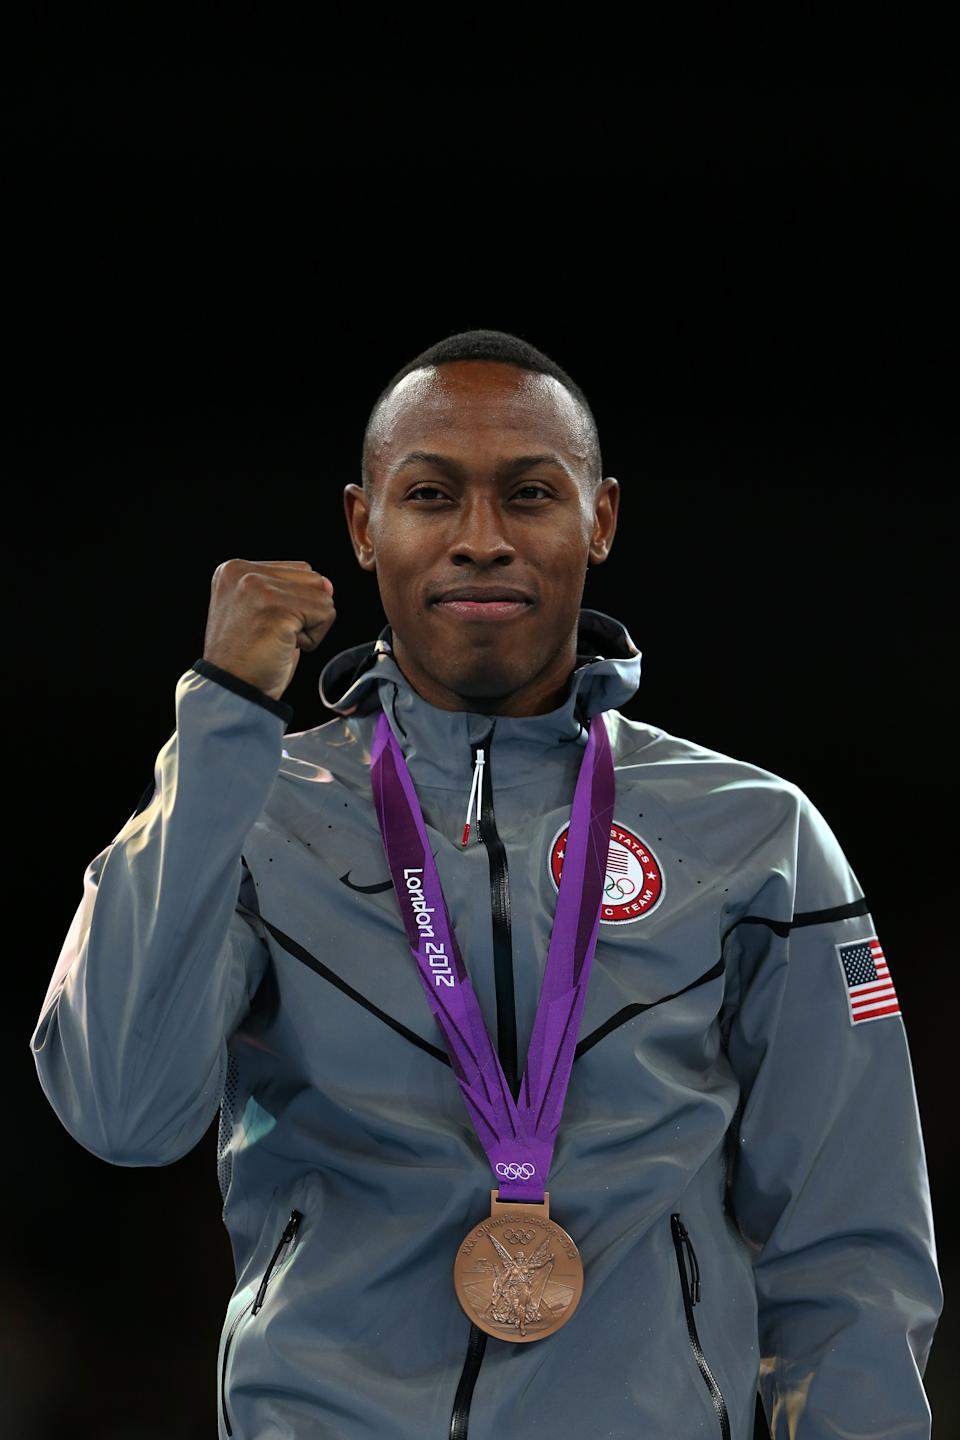 """Bronze medalist <a href=""""http://sports.yahoo.com/olympics/taekwondo/terrence-jennings-1132211/"""" data-ylk=""""slk:Terrence Jennings"""" class=""""link rapid-noclick-resp"""">Terrence Jennings</a> of the United States celebrates on the podium during the medal ceremony for the Men's-68kg Taekwondo on Day 13 of the London 2012 Olympic Games at ExCeL on August 9, 2012 in London, England. (Getty Images)"""